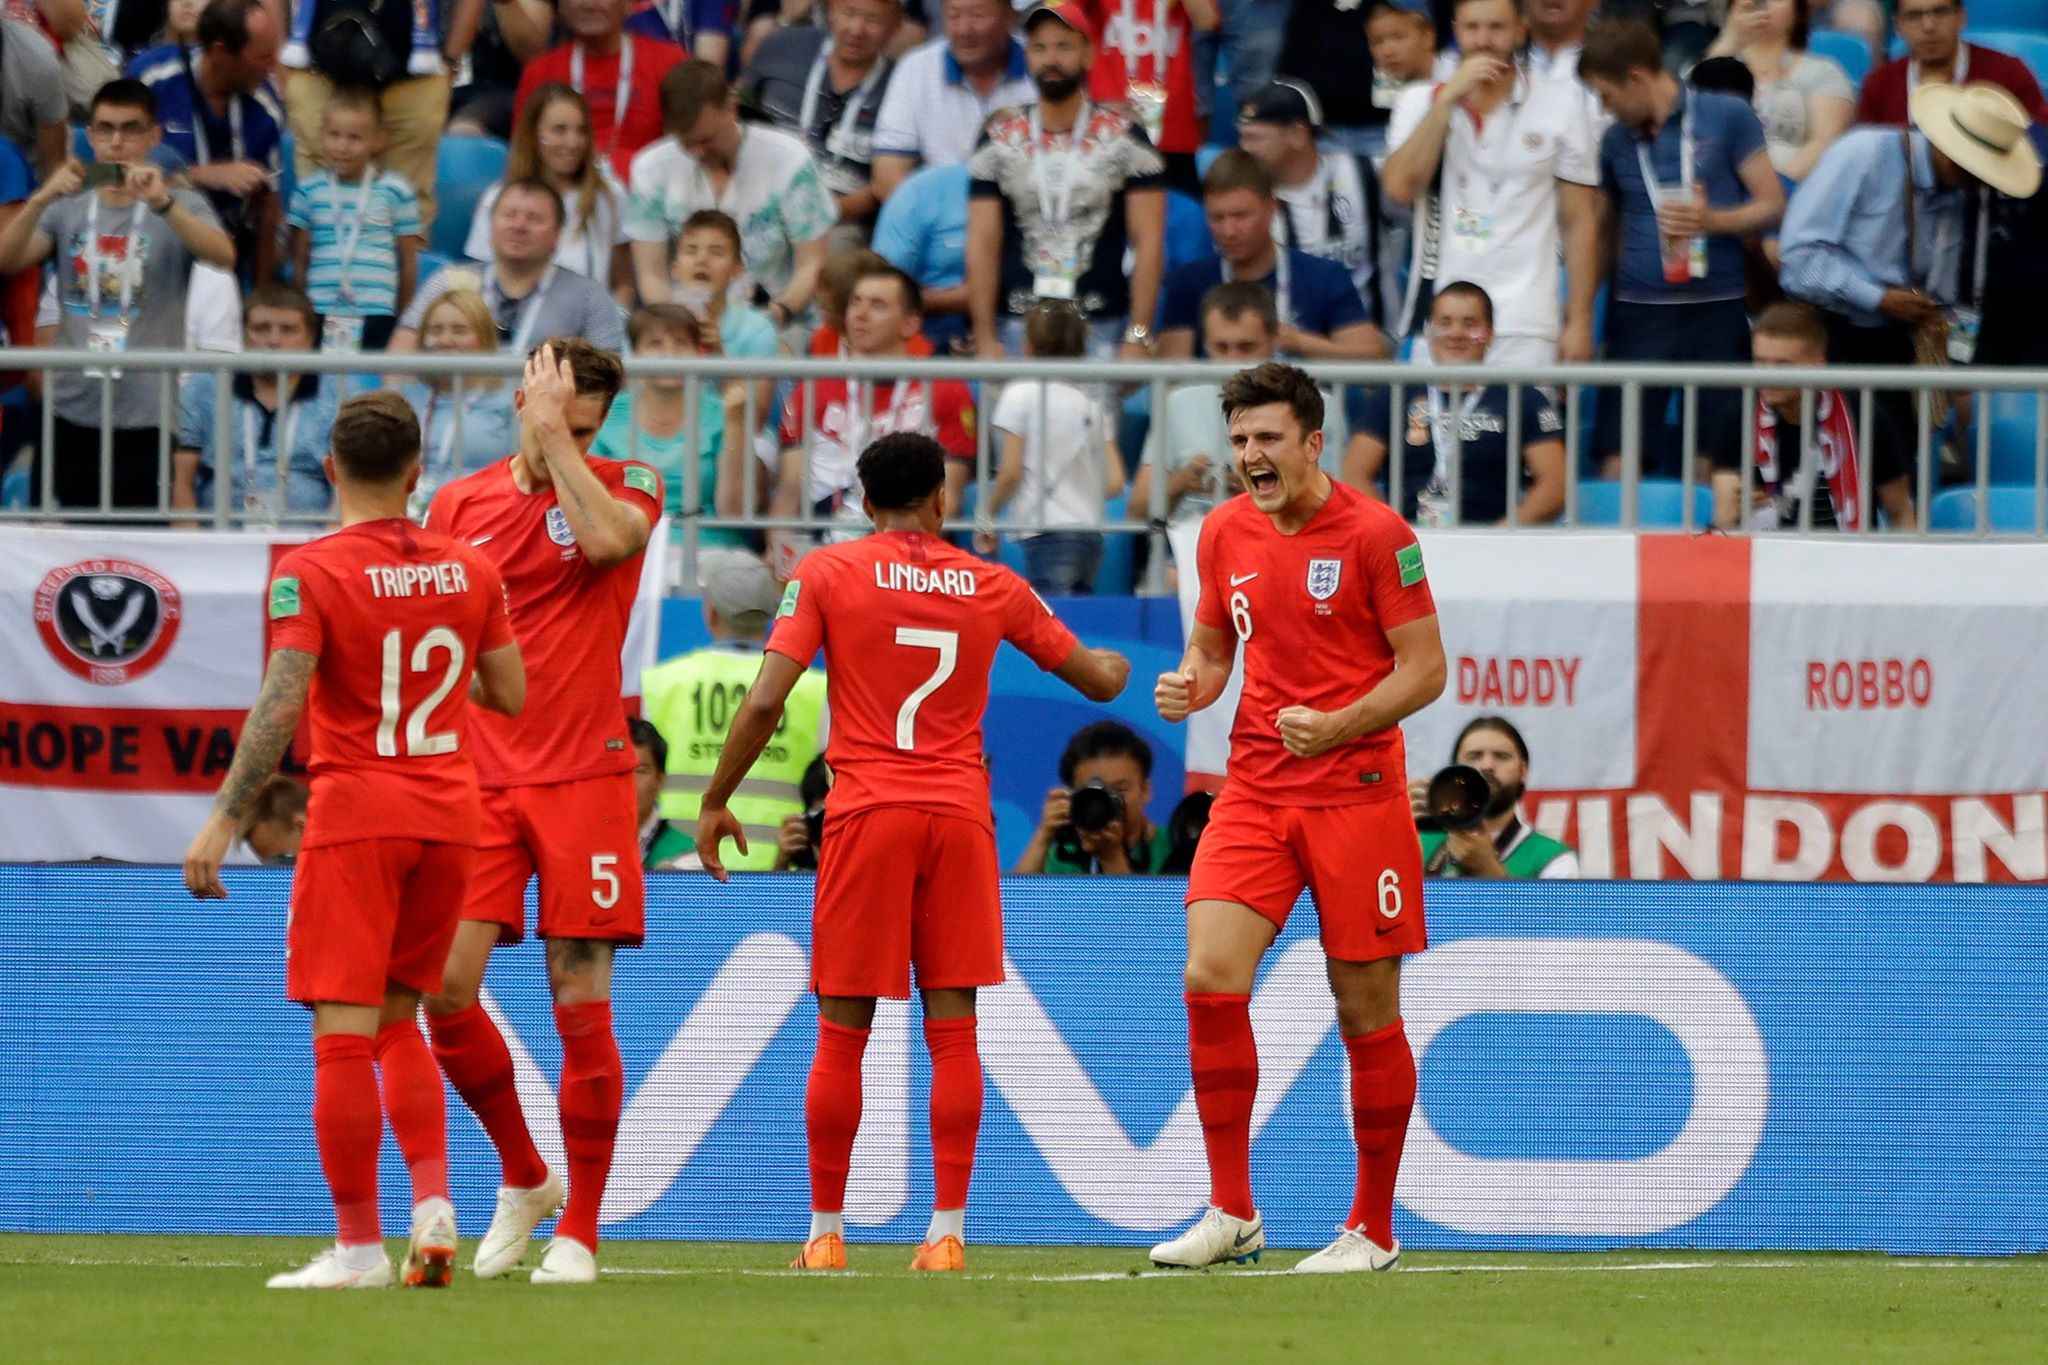 England players celebrate scoring a goal. Image PA